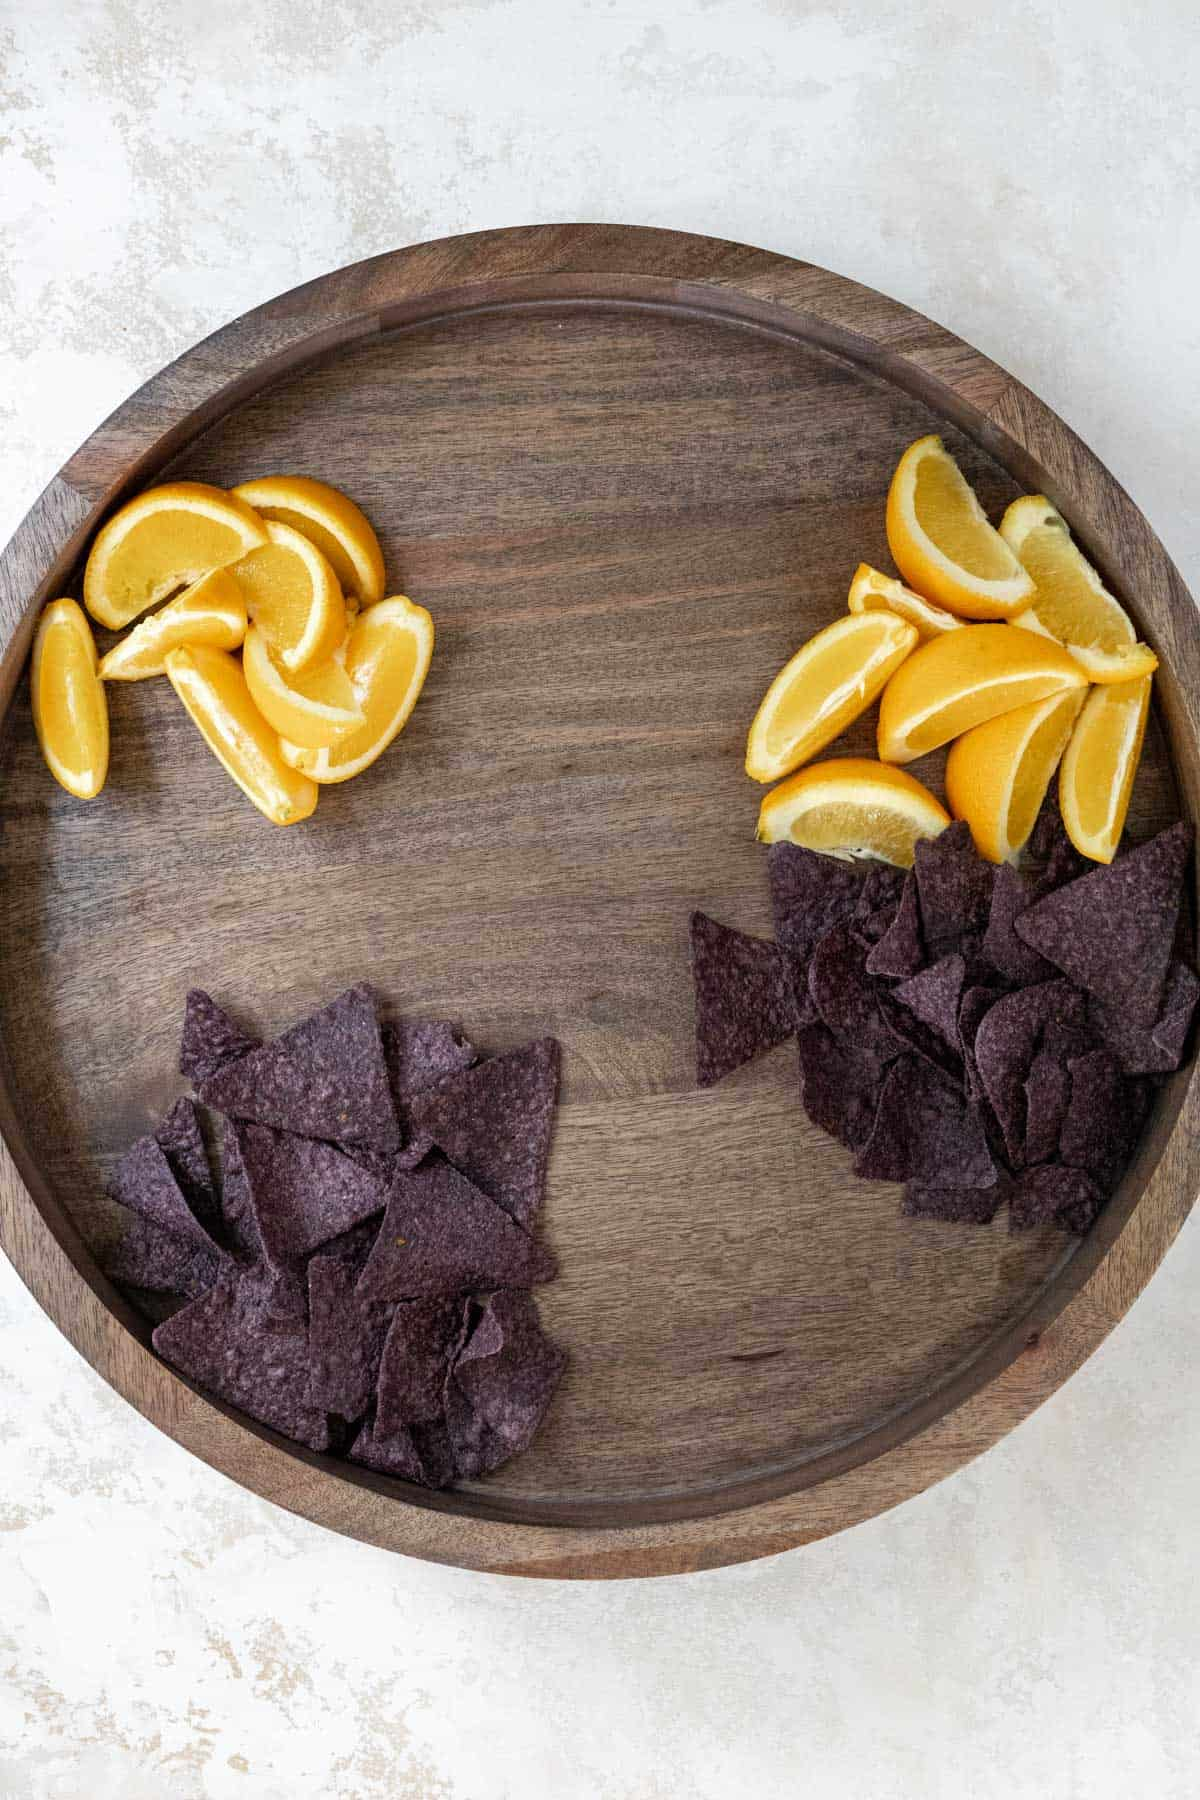 Orange wedges and blue corn tortilla chips arranged on a wooden board.